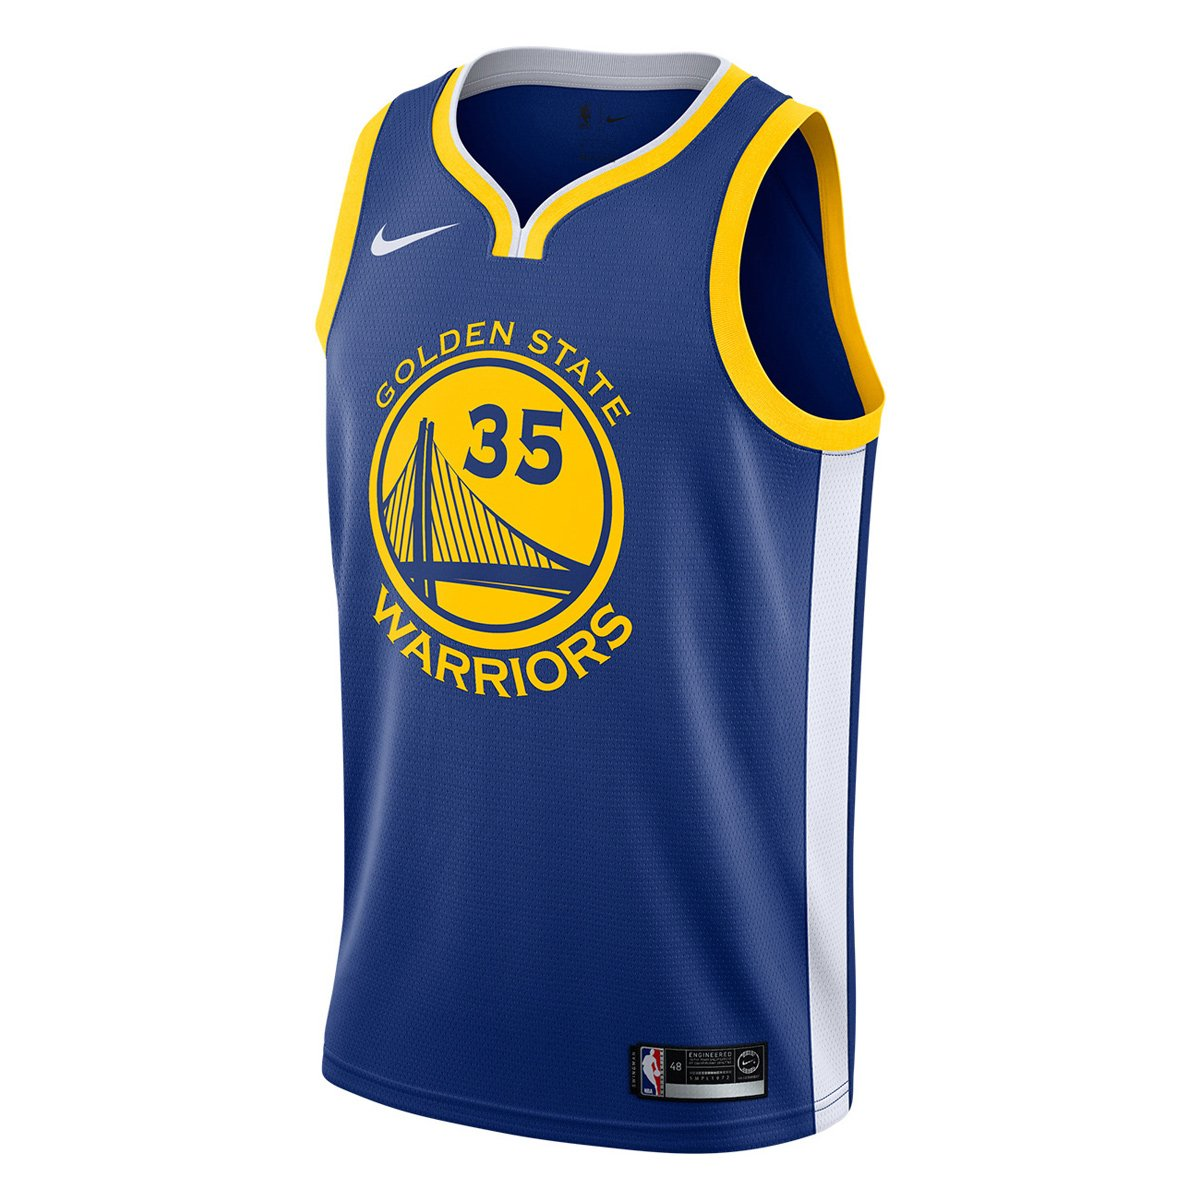 39c5970cd Camiseta Regata Nike Golden State Warriors Swingman NBA - Kevin Durant -  Compre Agora